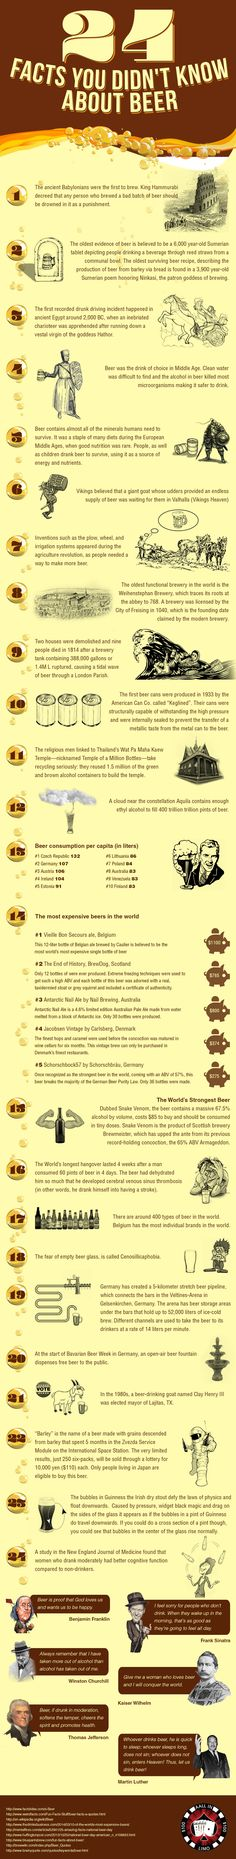 Impress your friends with your new found beer knowledge thanks to this infographic with 24 facts you didn't know about beer. >> https://www.finedininglovers.com/blog/food-drinks/beer-facts-infographic/